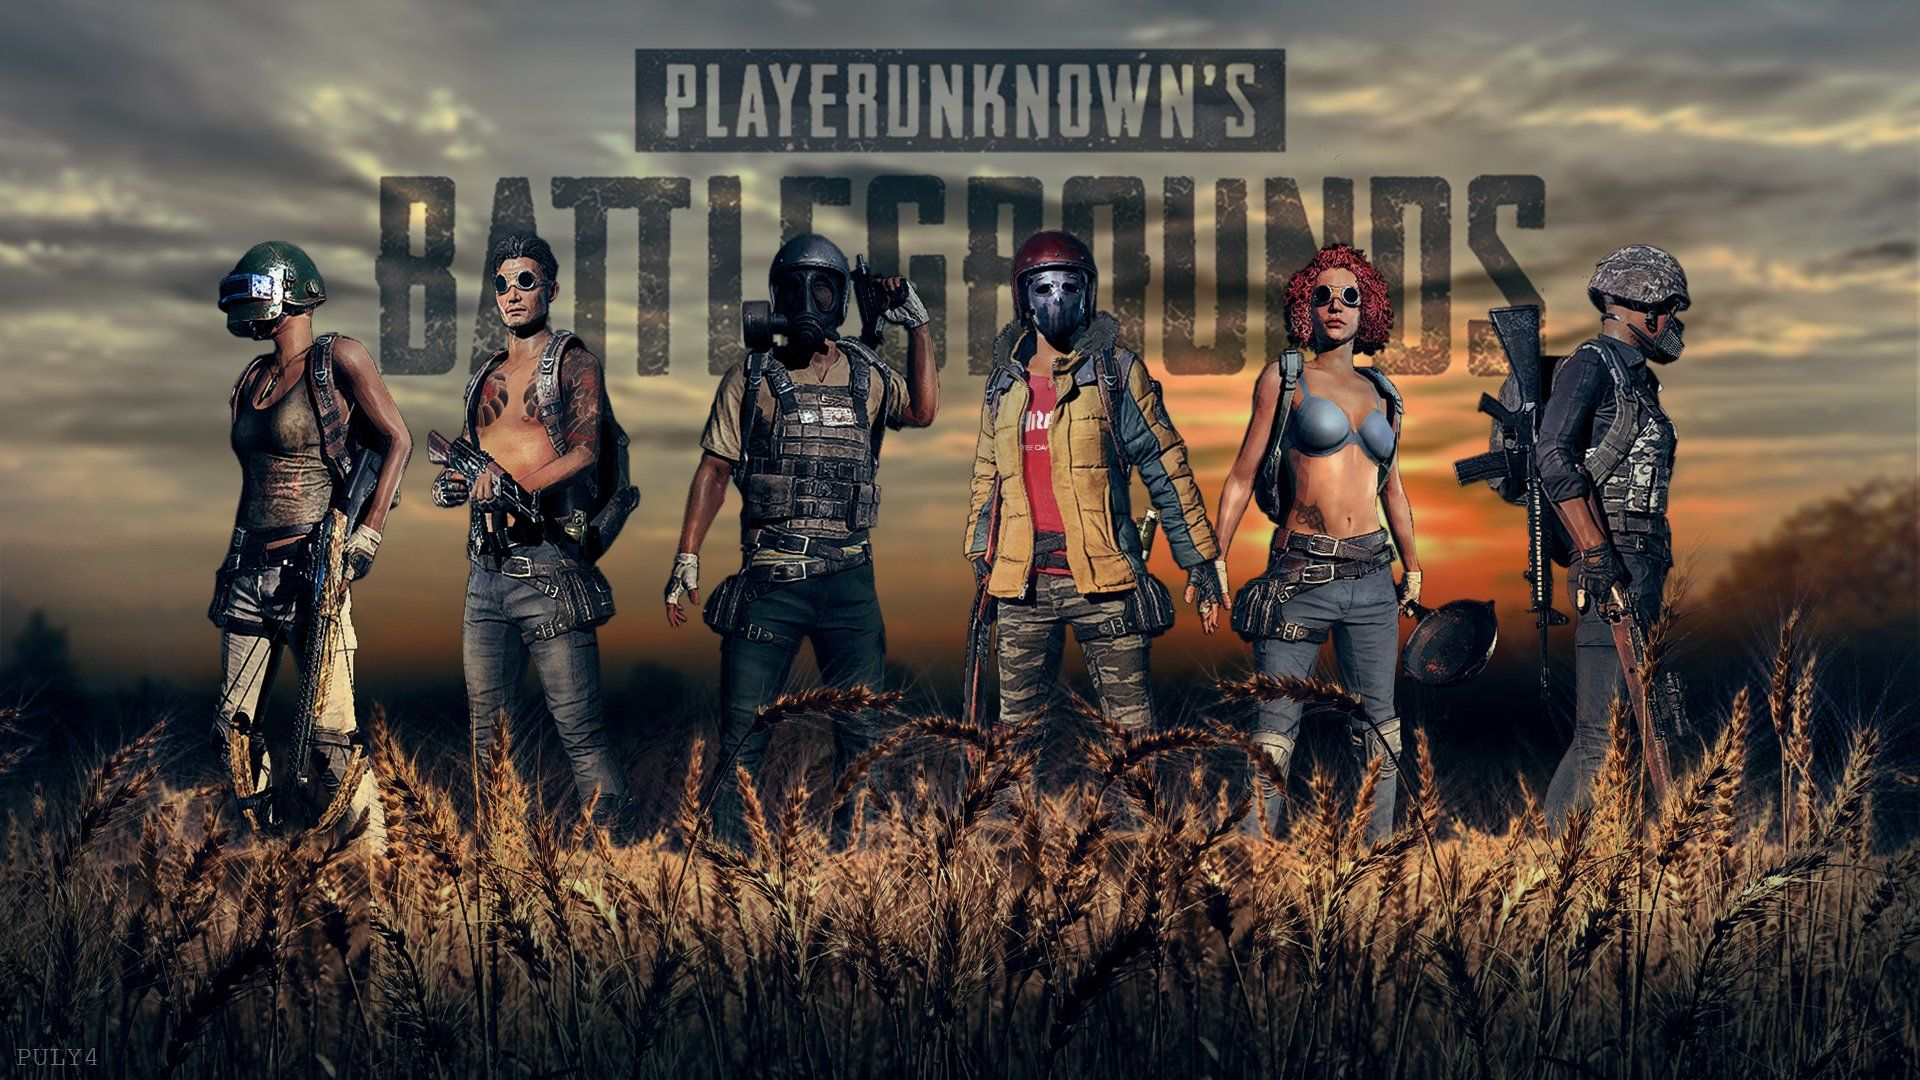 Video Game Playerunknown S Battlegrounds Wallpaper Pc Desktop Wallpaper 4k Photos Gaming Wallpapers